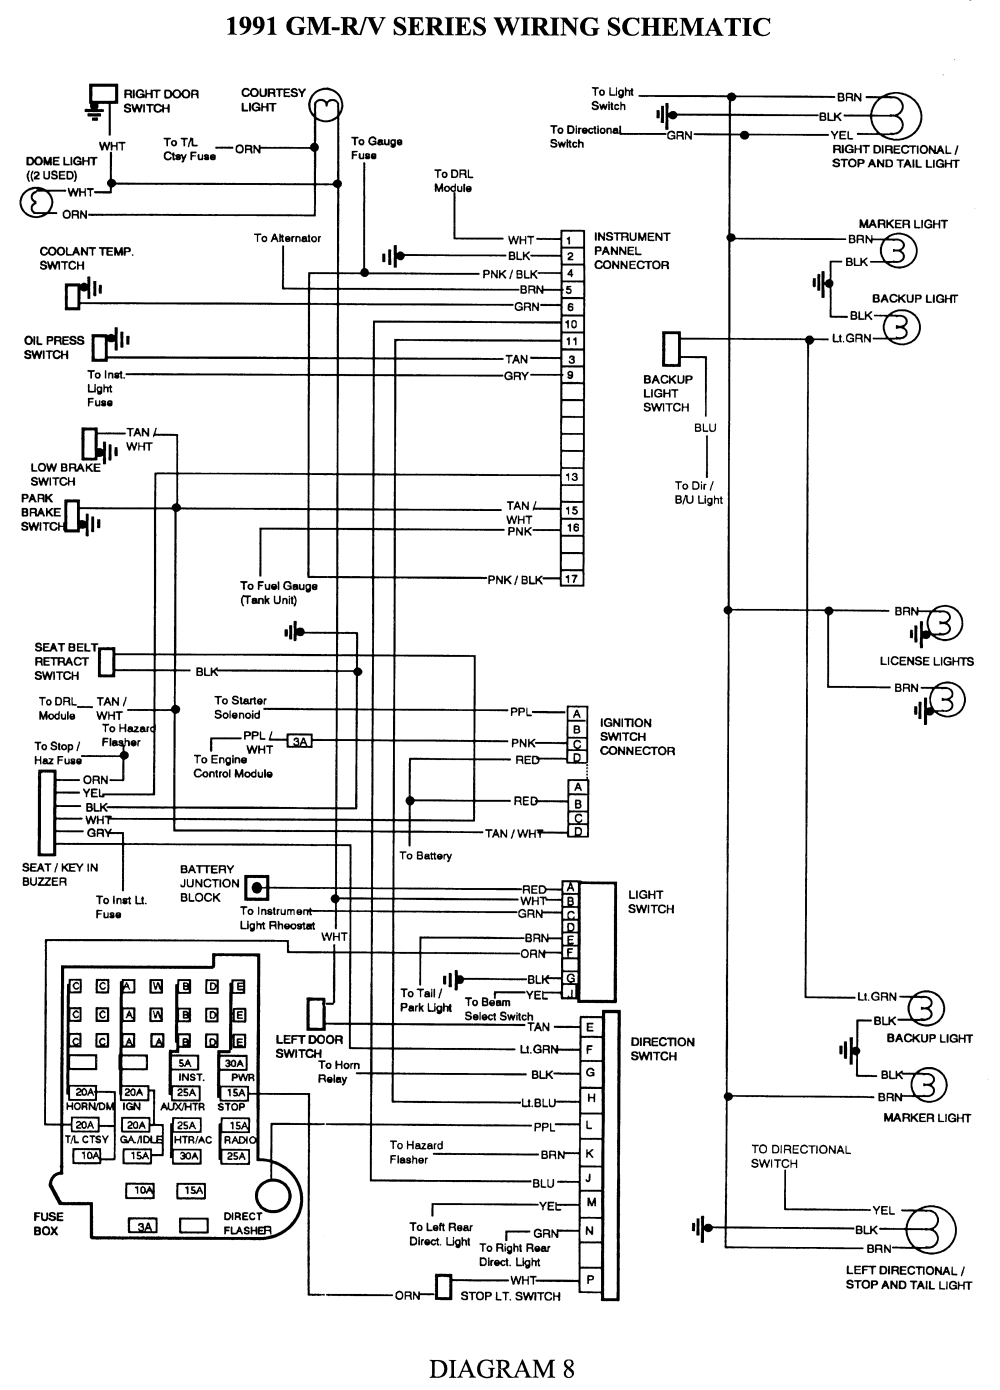 1970 Blazer Wiring Diagram FULL HD Version Wiring Diagram - LEVI-DIAGRAM .EXPERTSUNIVERSITY.ITDiagram Database And Images